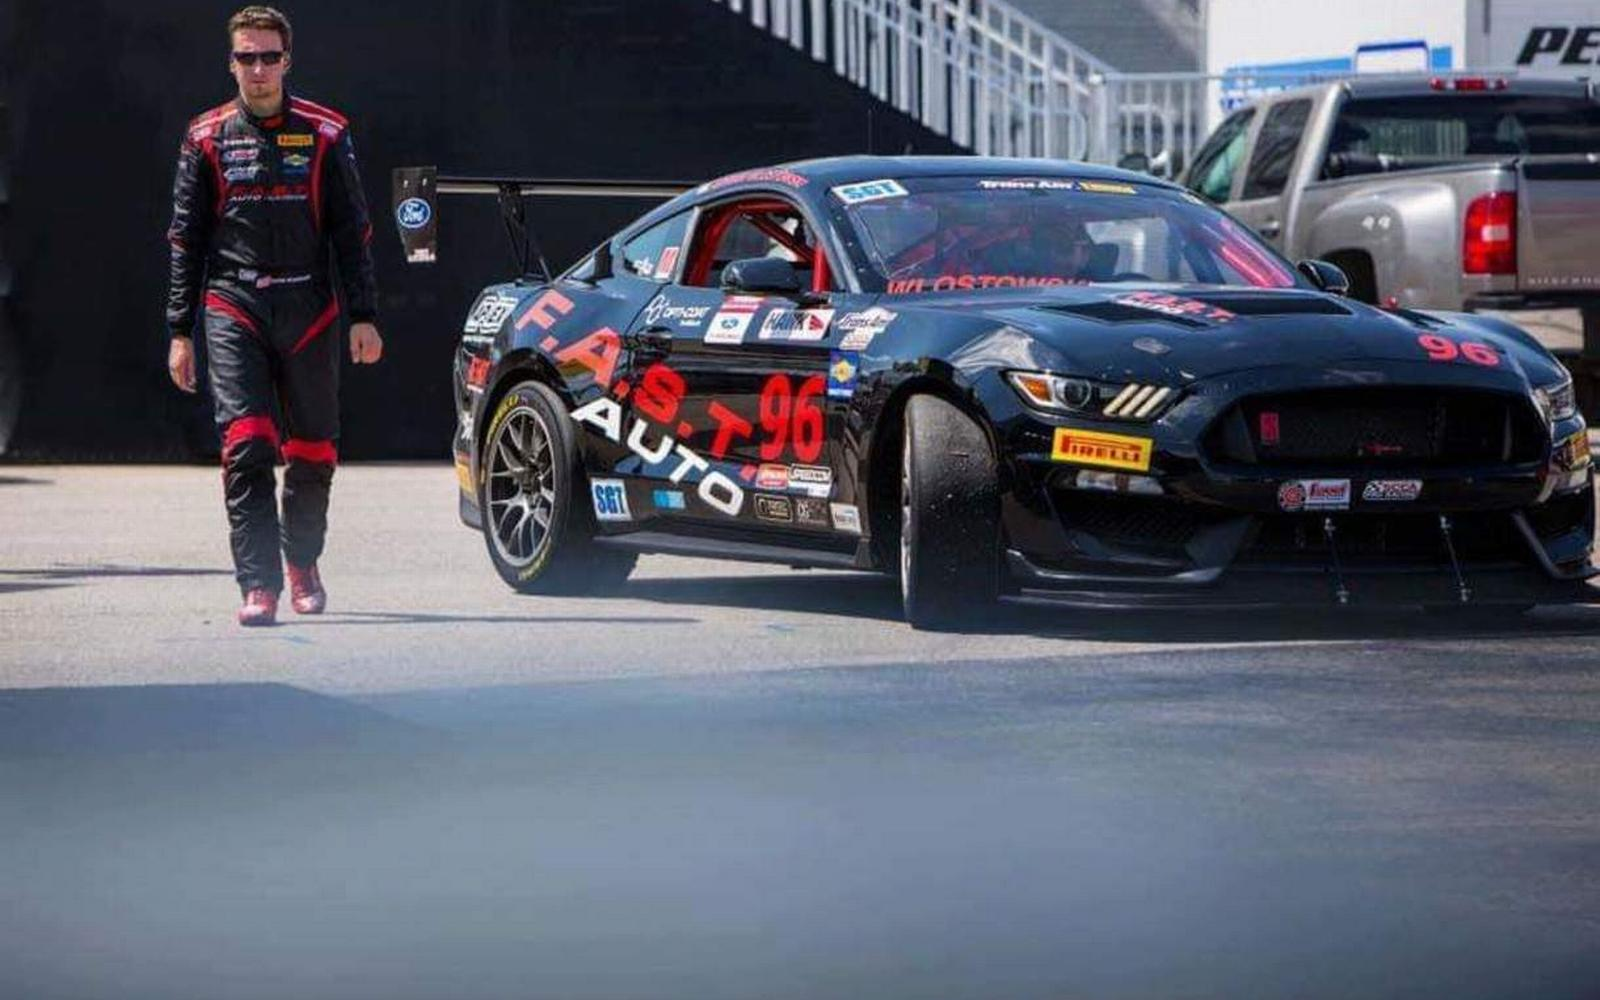 SGT Podium the Aim for Trans Am Rookie Wlostowski